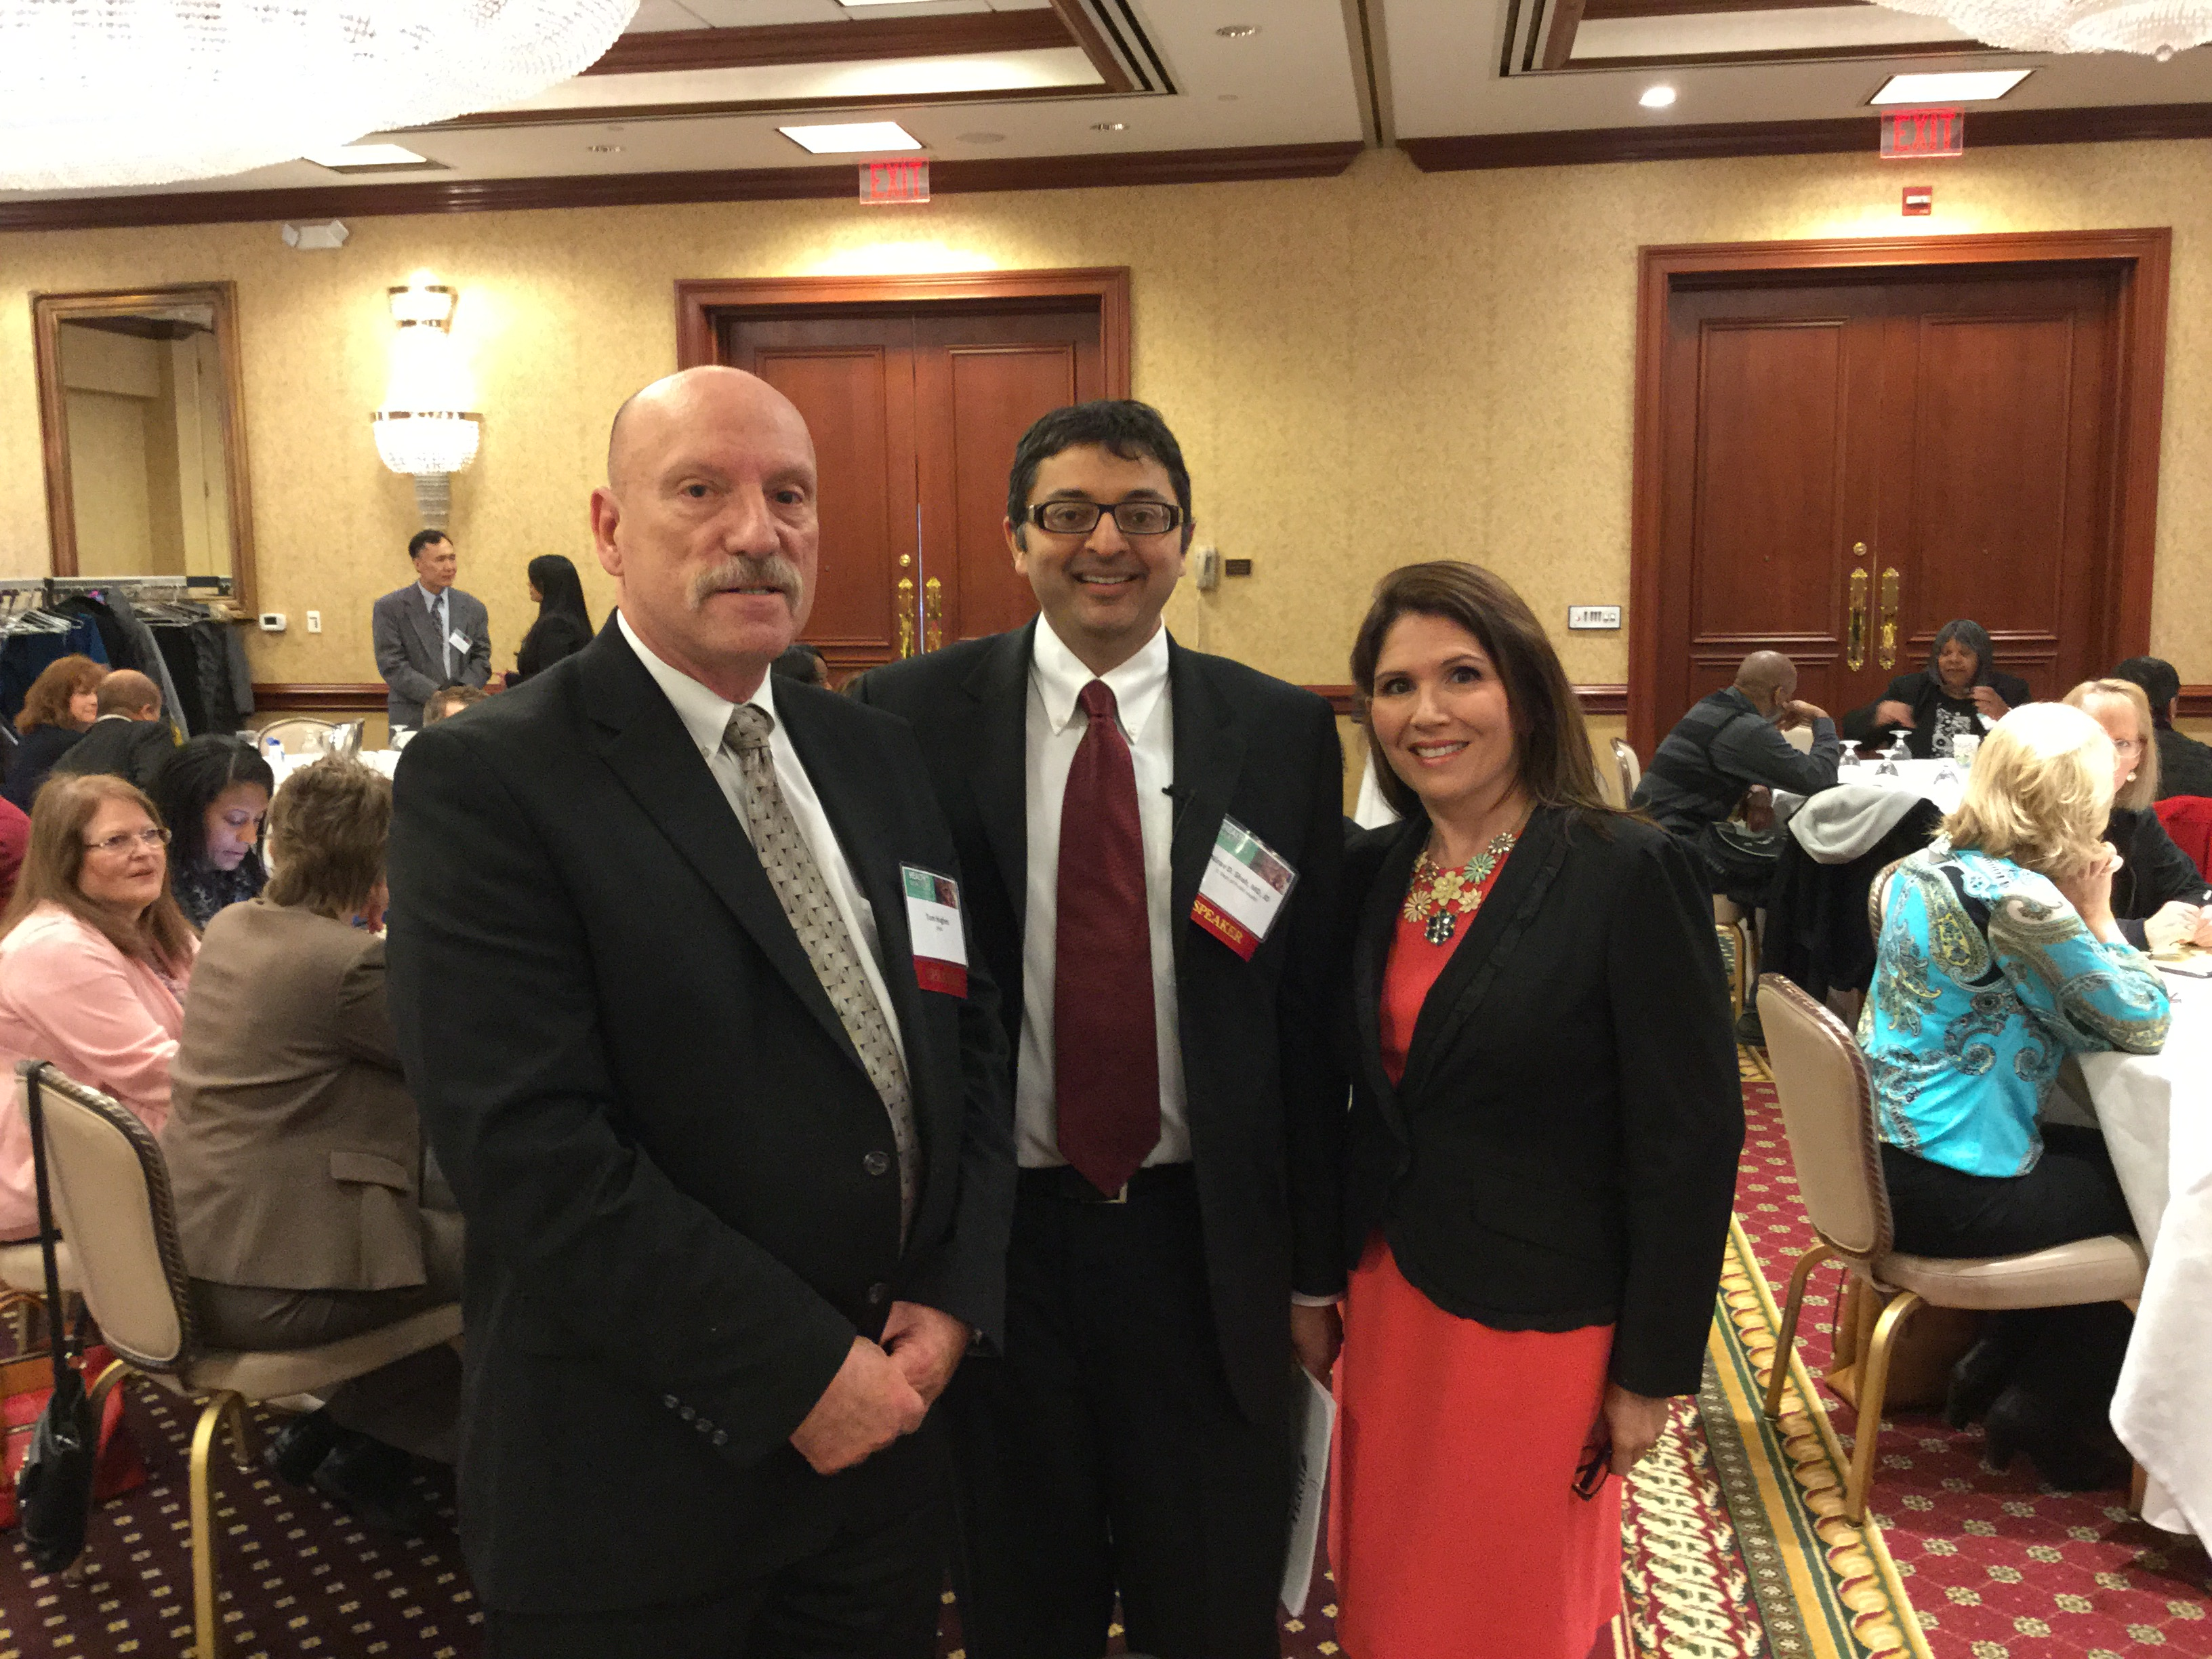 Lt. Governor and IDPH Director attend Minority Health Conference